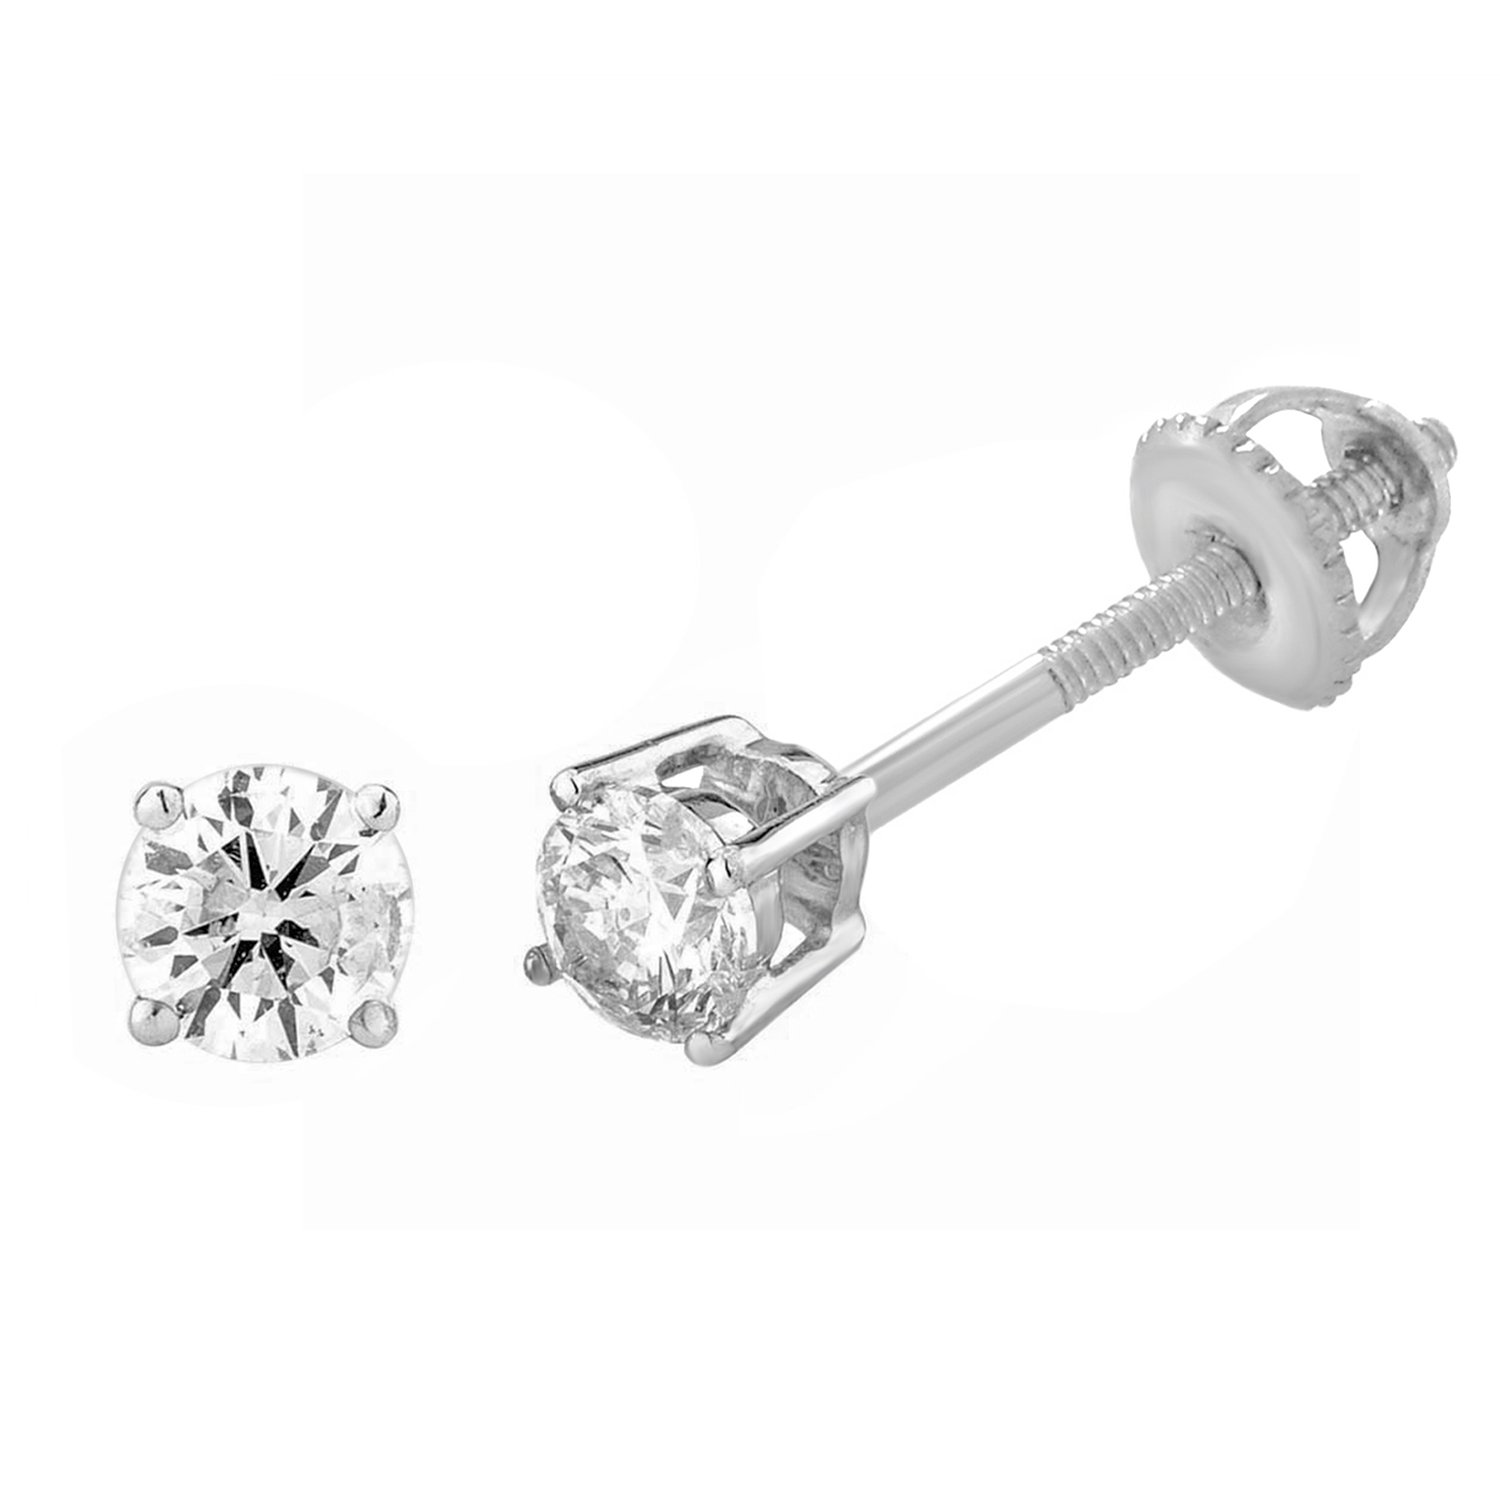 14k Gold Round-Cut Diamond 4-prong Stud Earrings (1/4 cttw, I-J Color, I2-I3 Clarity) (white-gold)